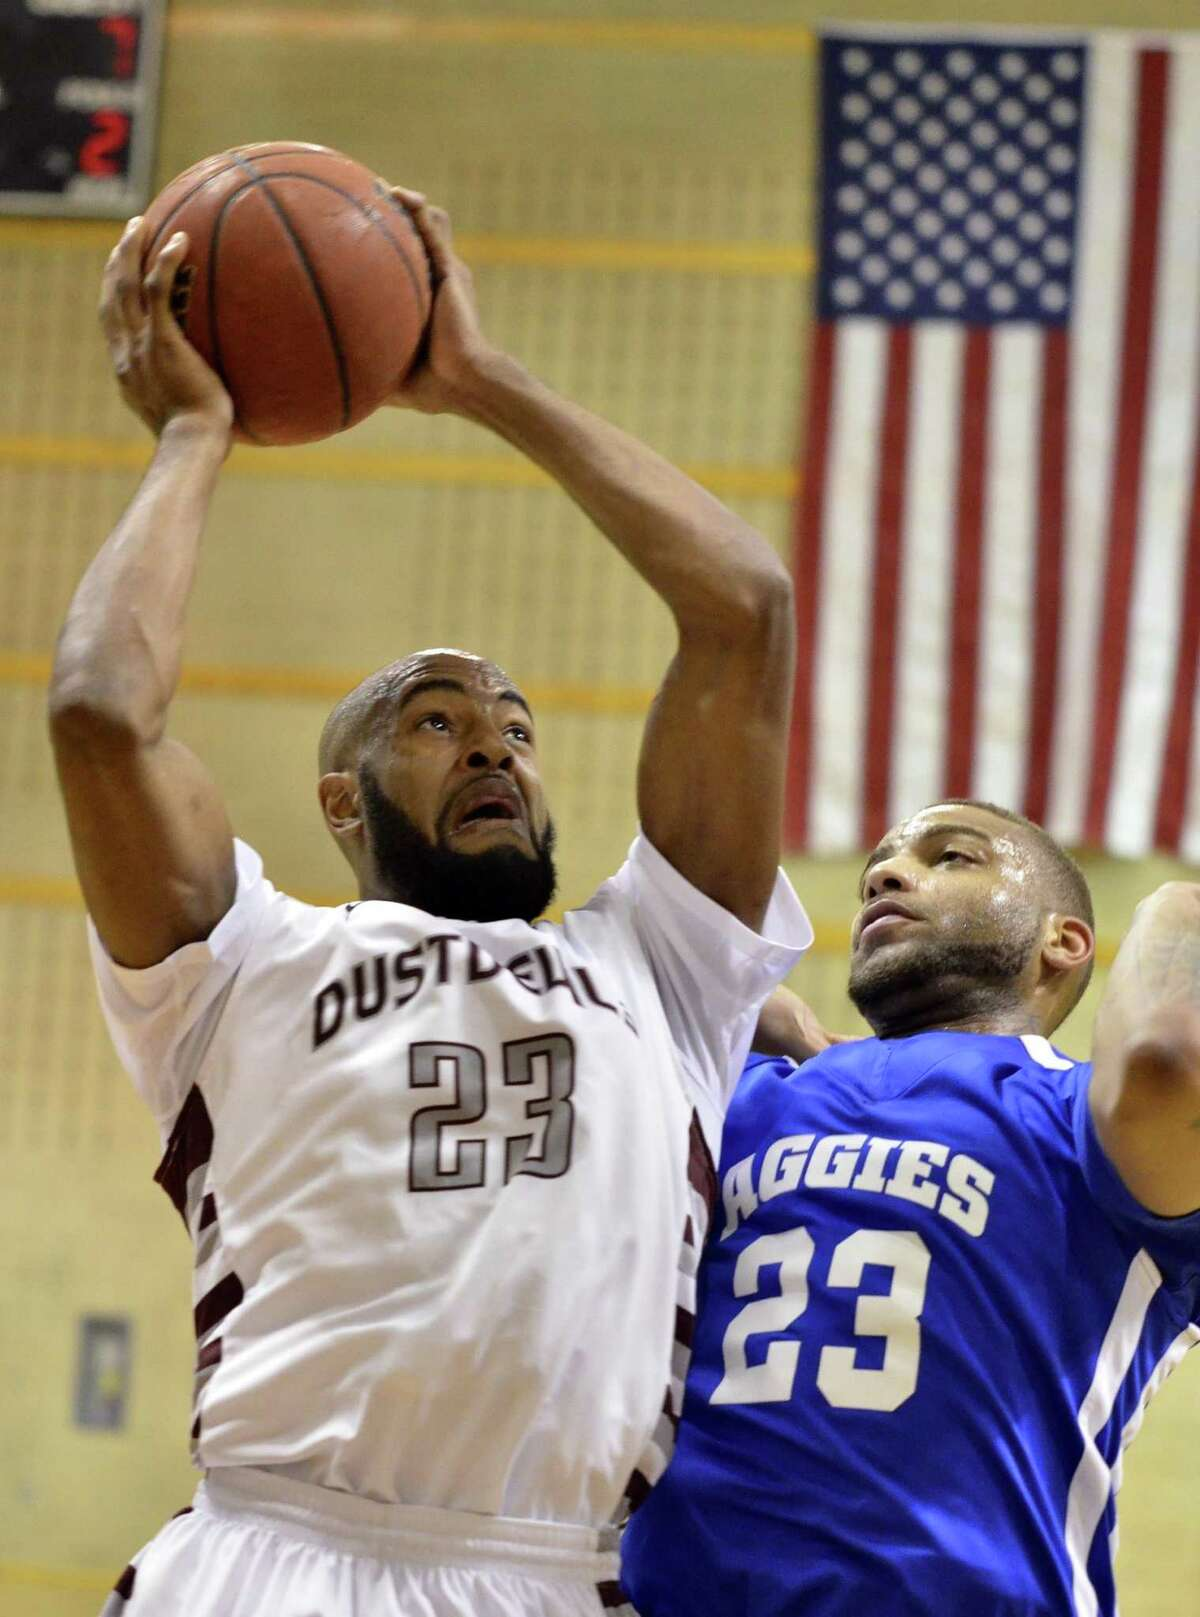 Jordan Clark is one of many returning stars for Dustdevil basketball that will face the current team in the 2017 TAMIU Alumni Game Saturday at 5 p.m.